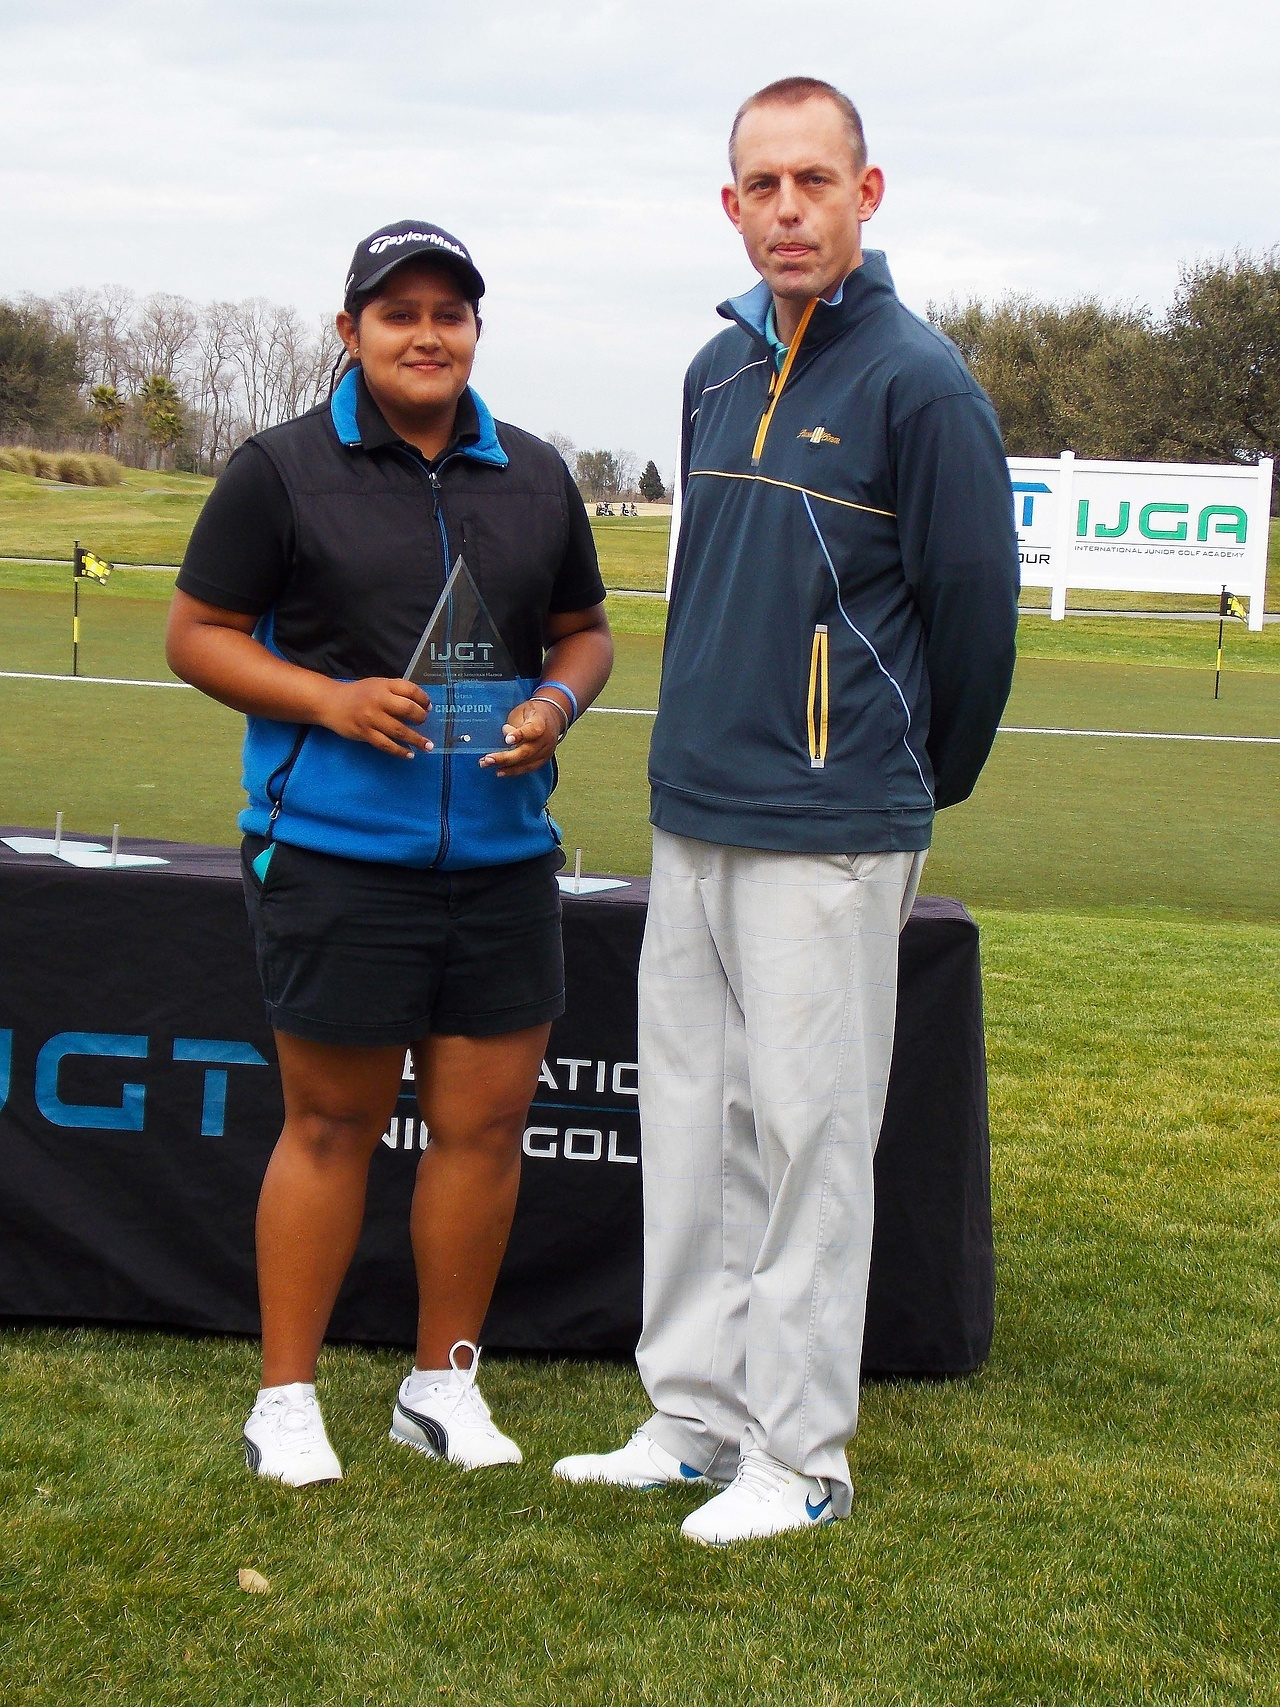 IJGTSavannah Harbor Girls Champion Ankita Kedlaya